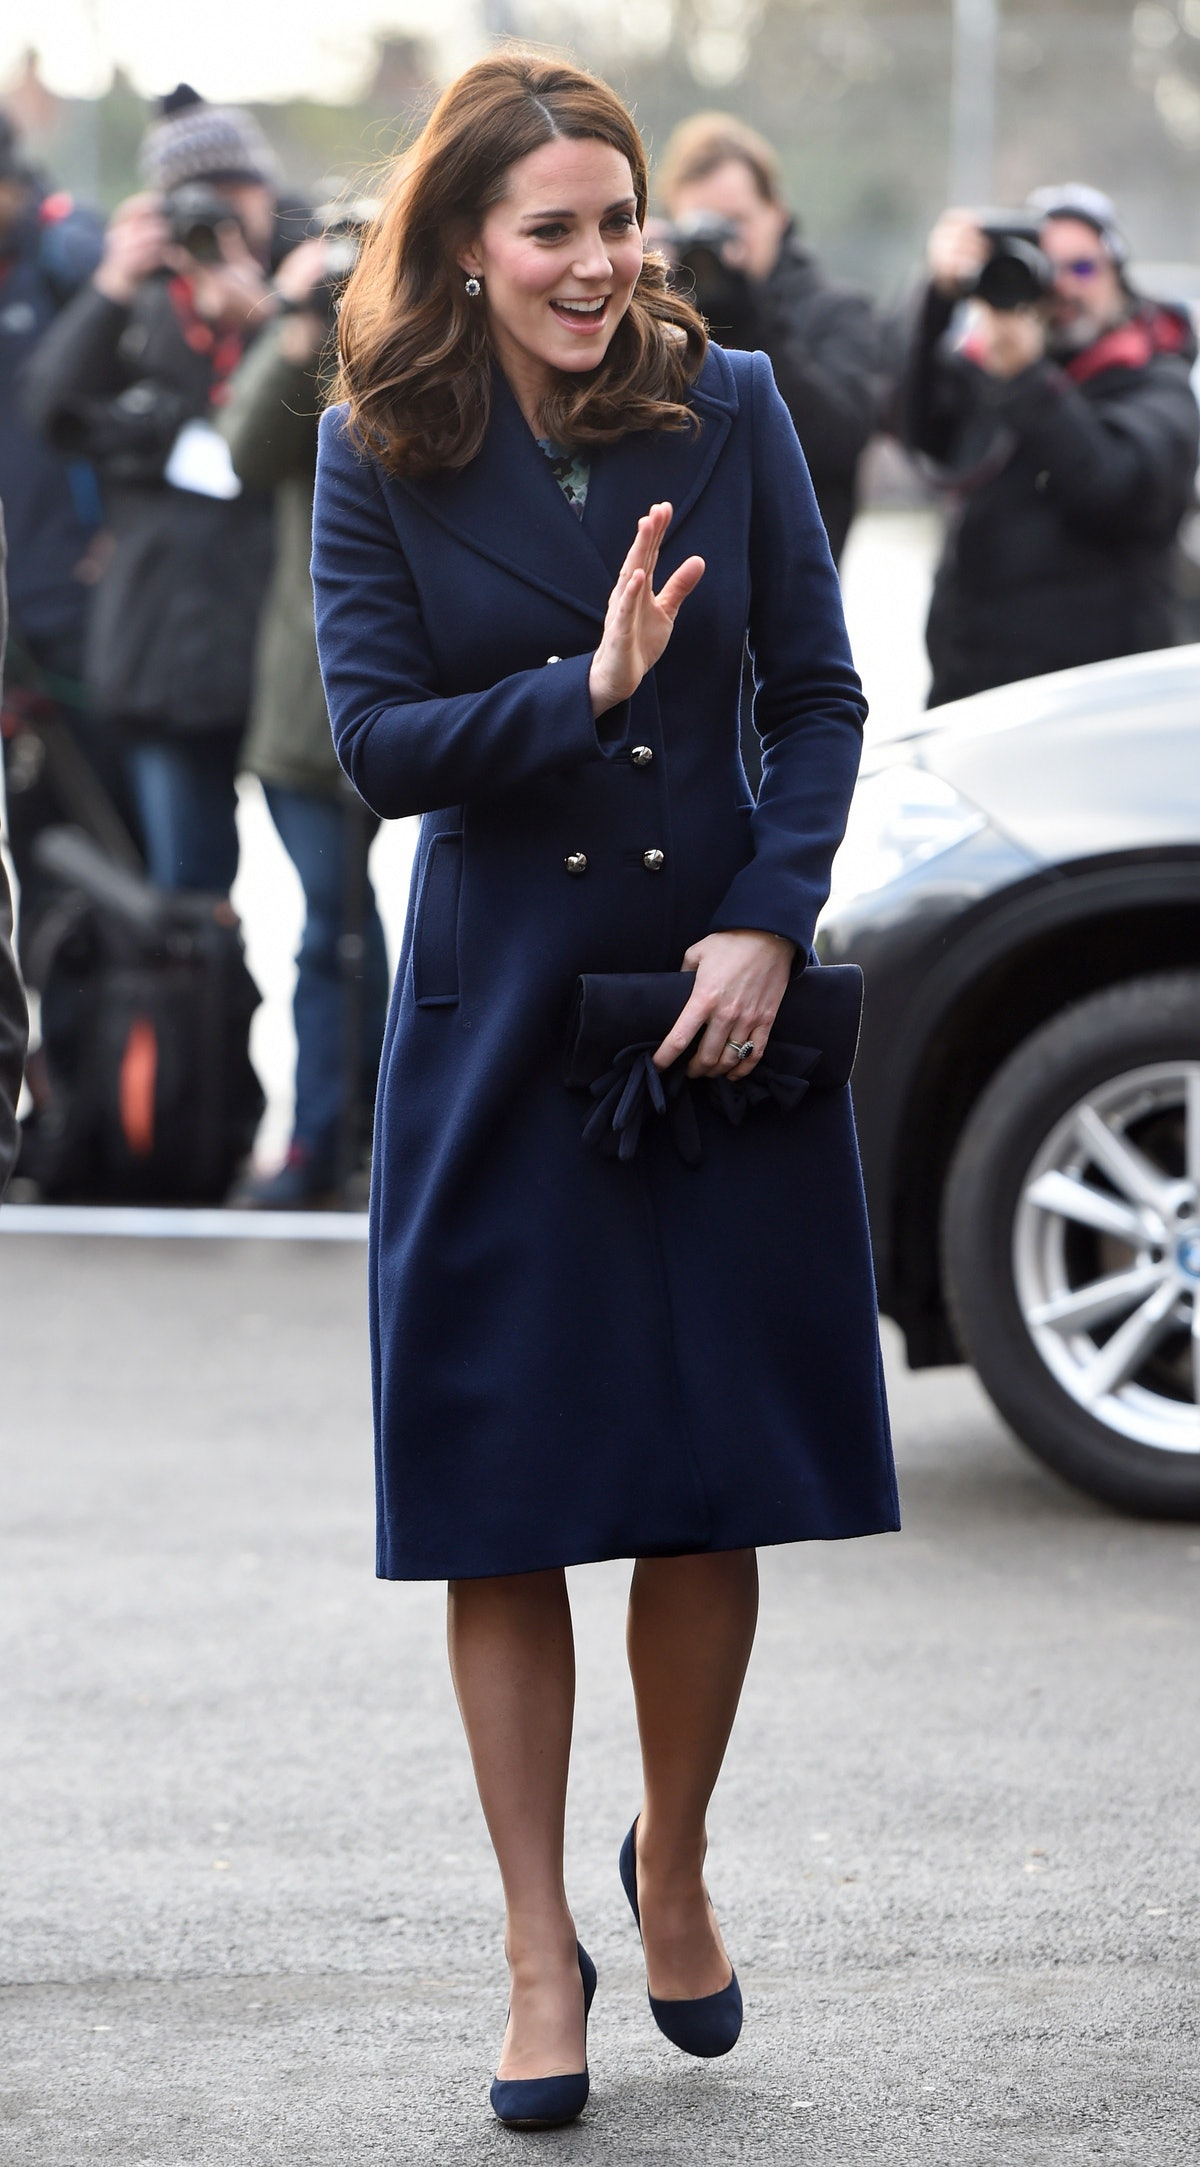 Kate Middleton Shines During Solo Appearance One Day After Her 36th Birthday